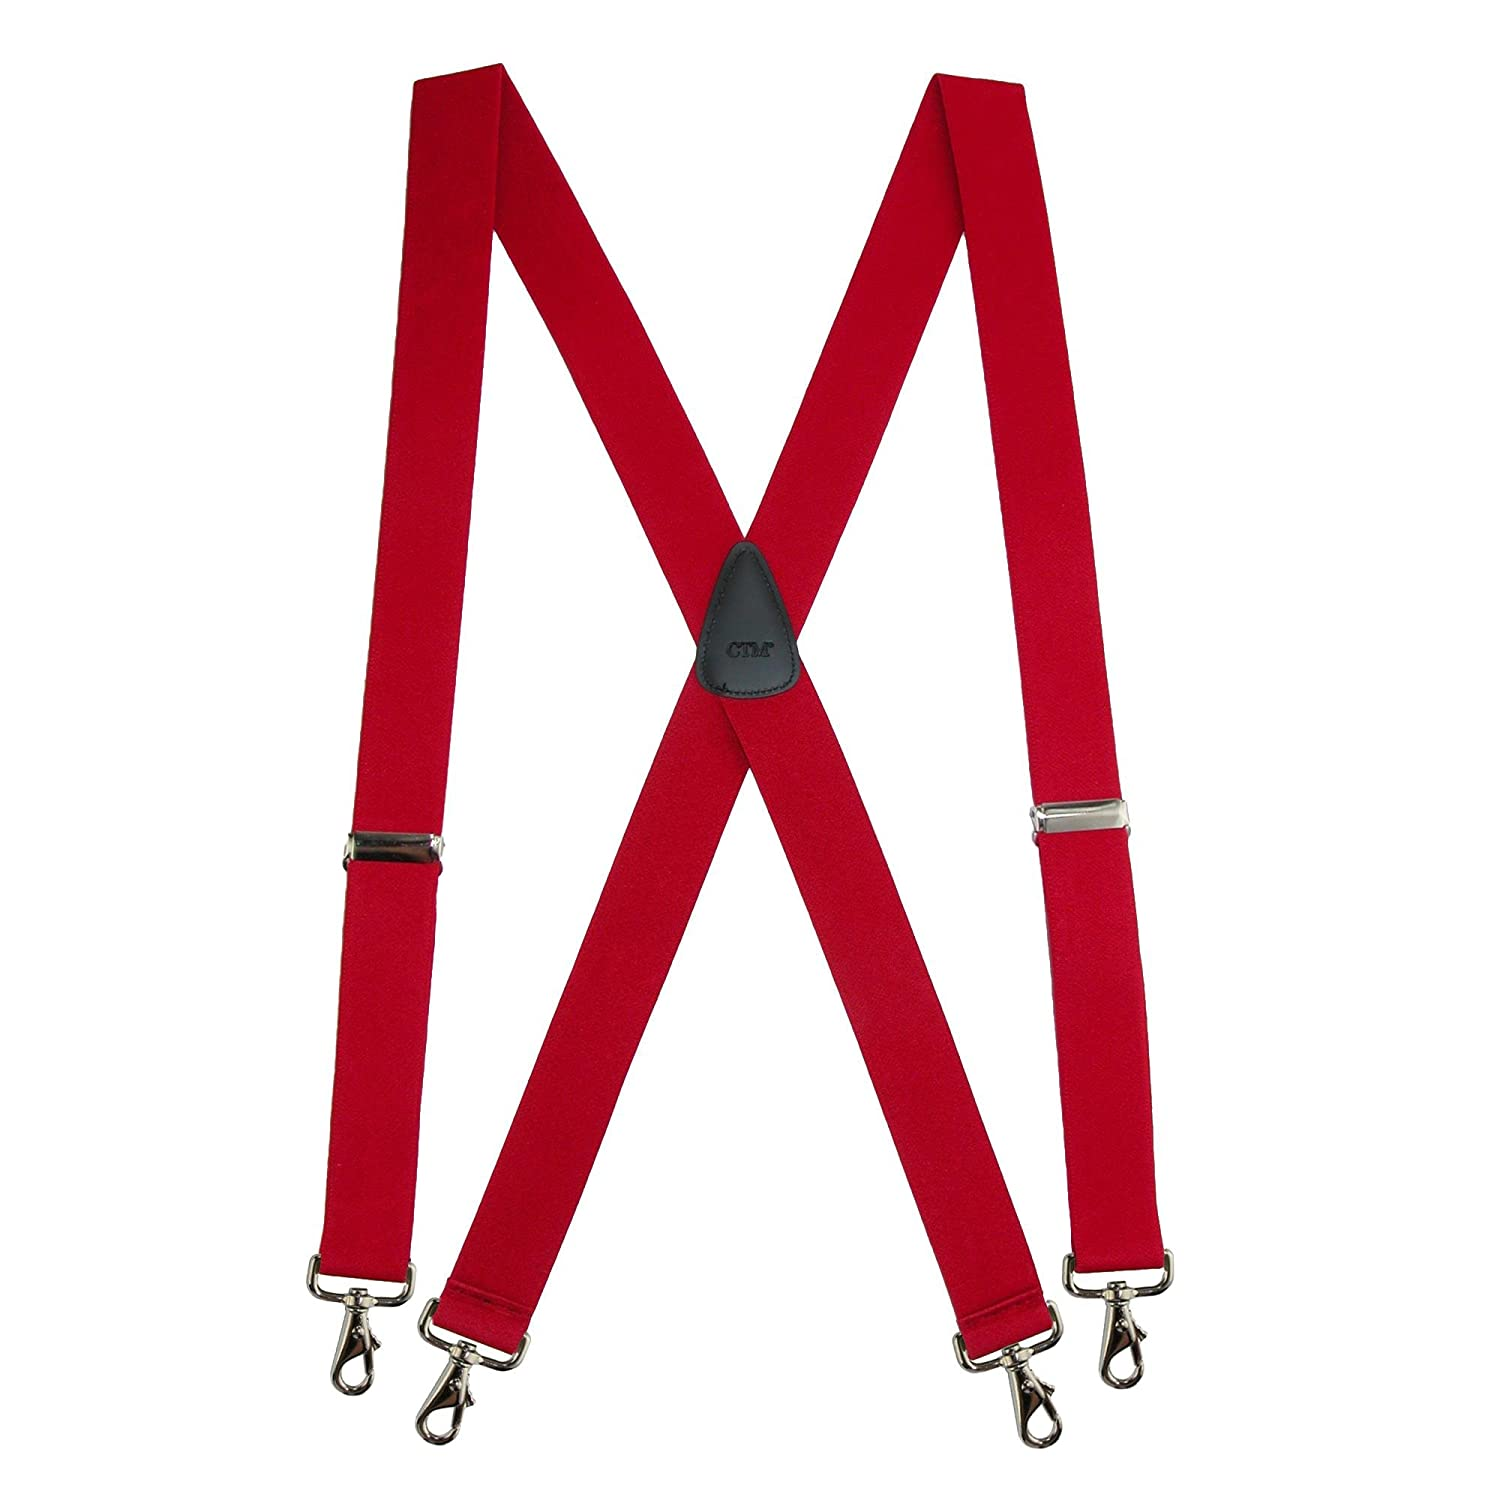 CTM Mens Big /& Tall Elastic Solid Color X-Back Suspender with Swivel Hook Ends Navy SF-4SX54-NAV